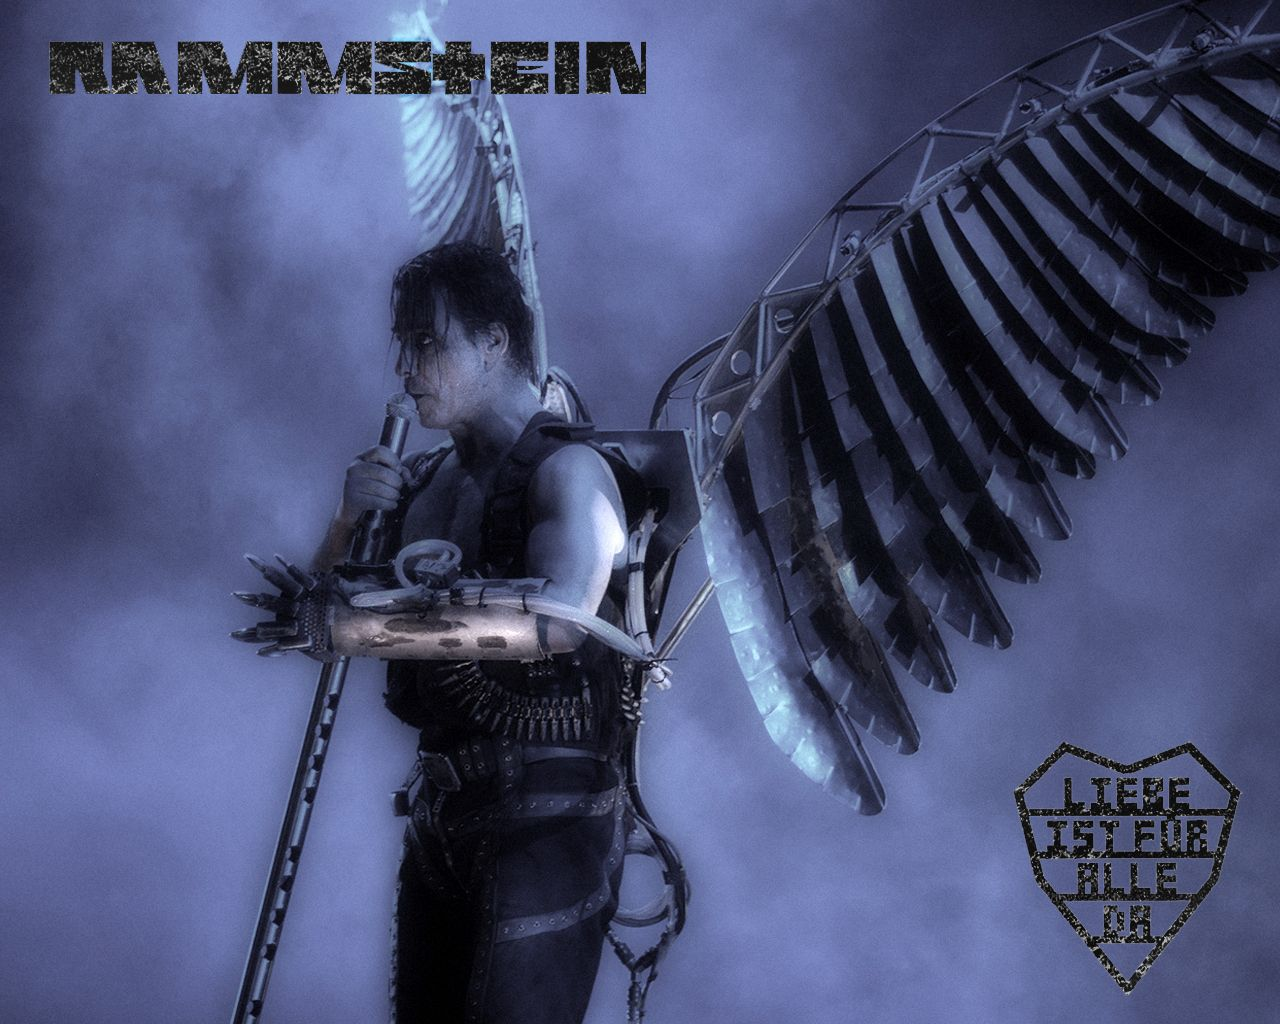 Rammstein Wallpapers - 1280x1024 на Sibnet